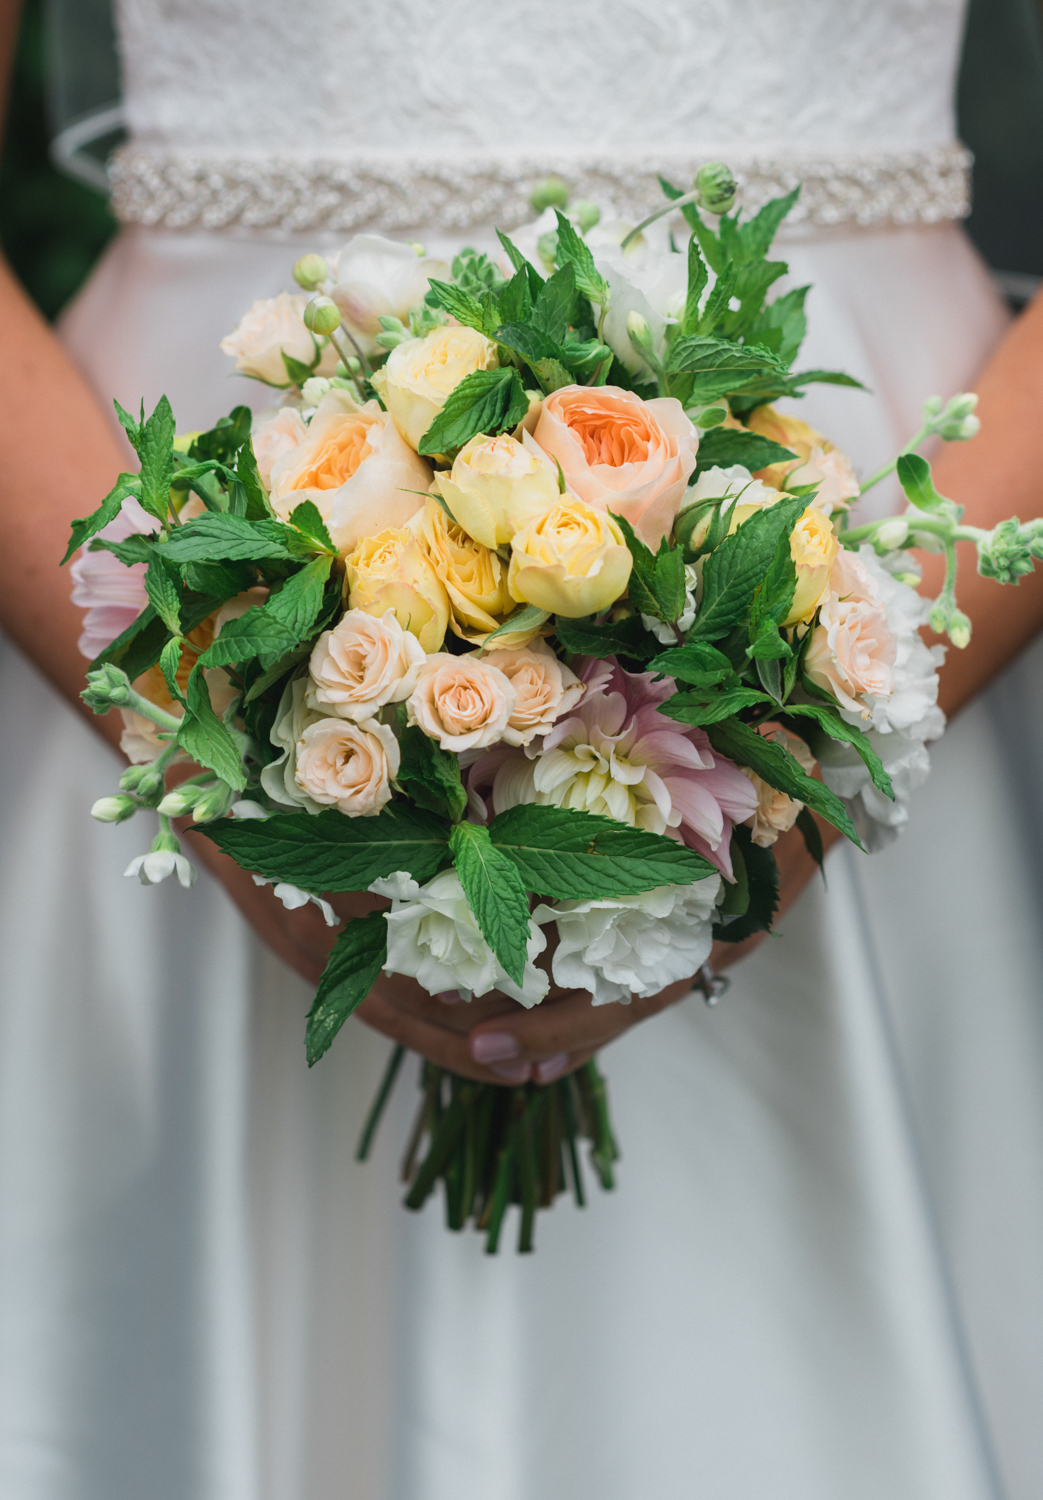 maureen_evan_bridal_wedding_bouquet_by morrice_florist_marthas_vineyard-3175.jpg